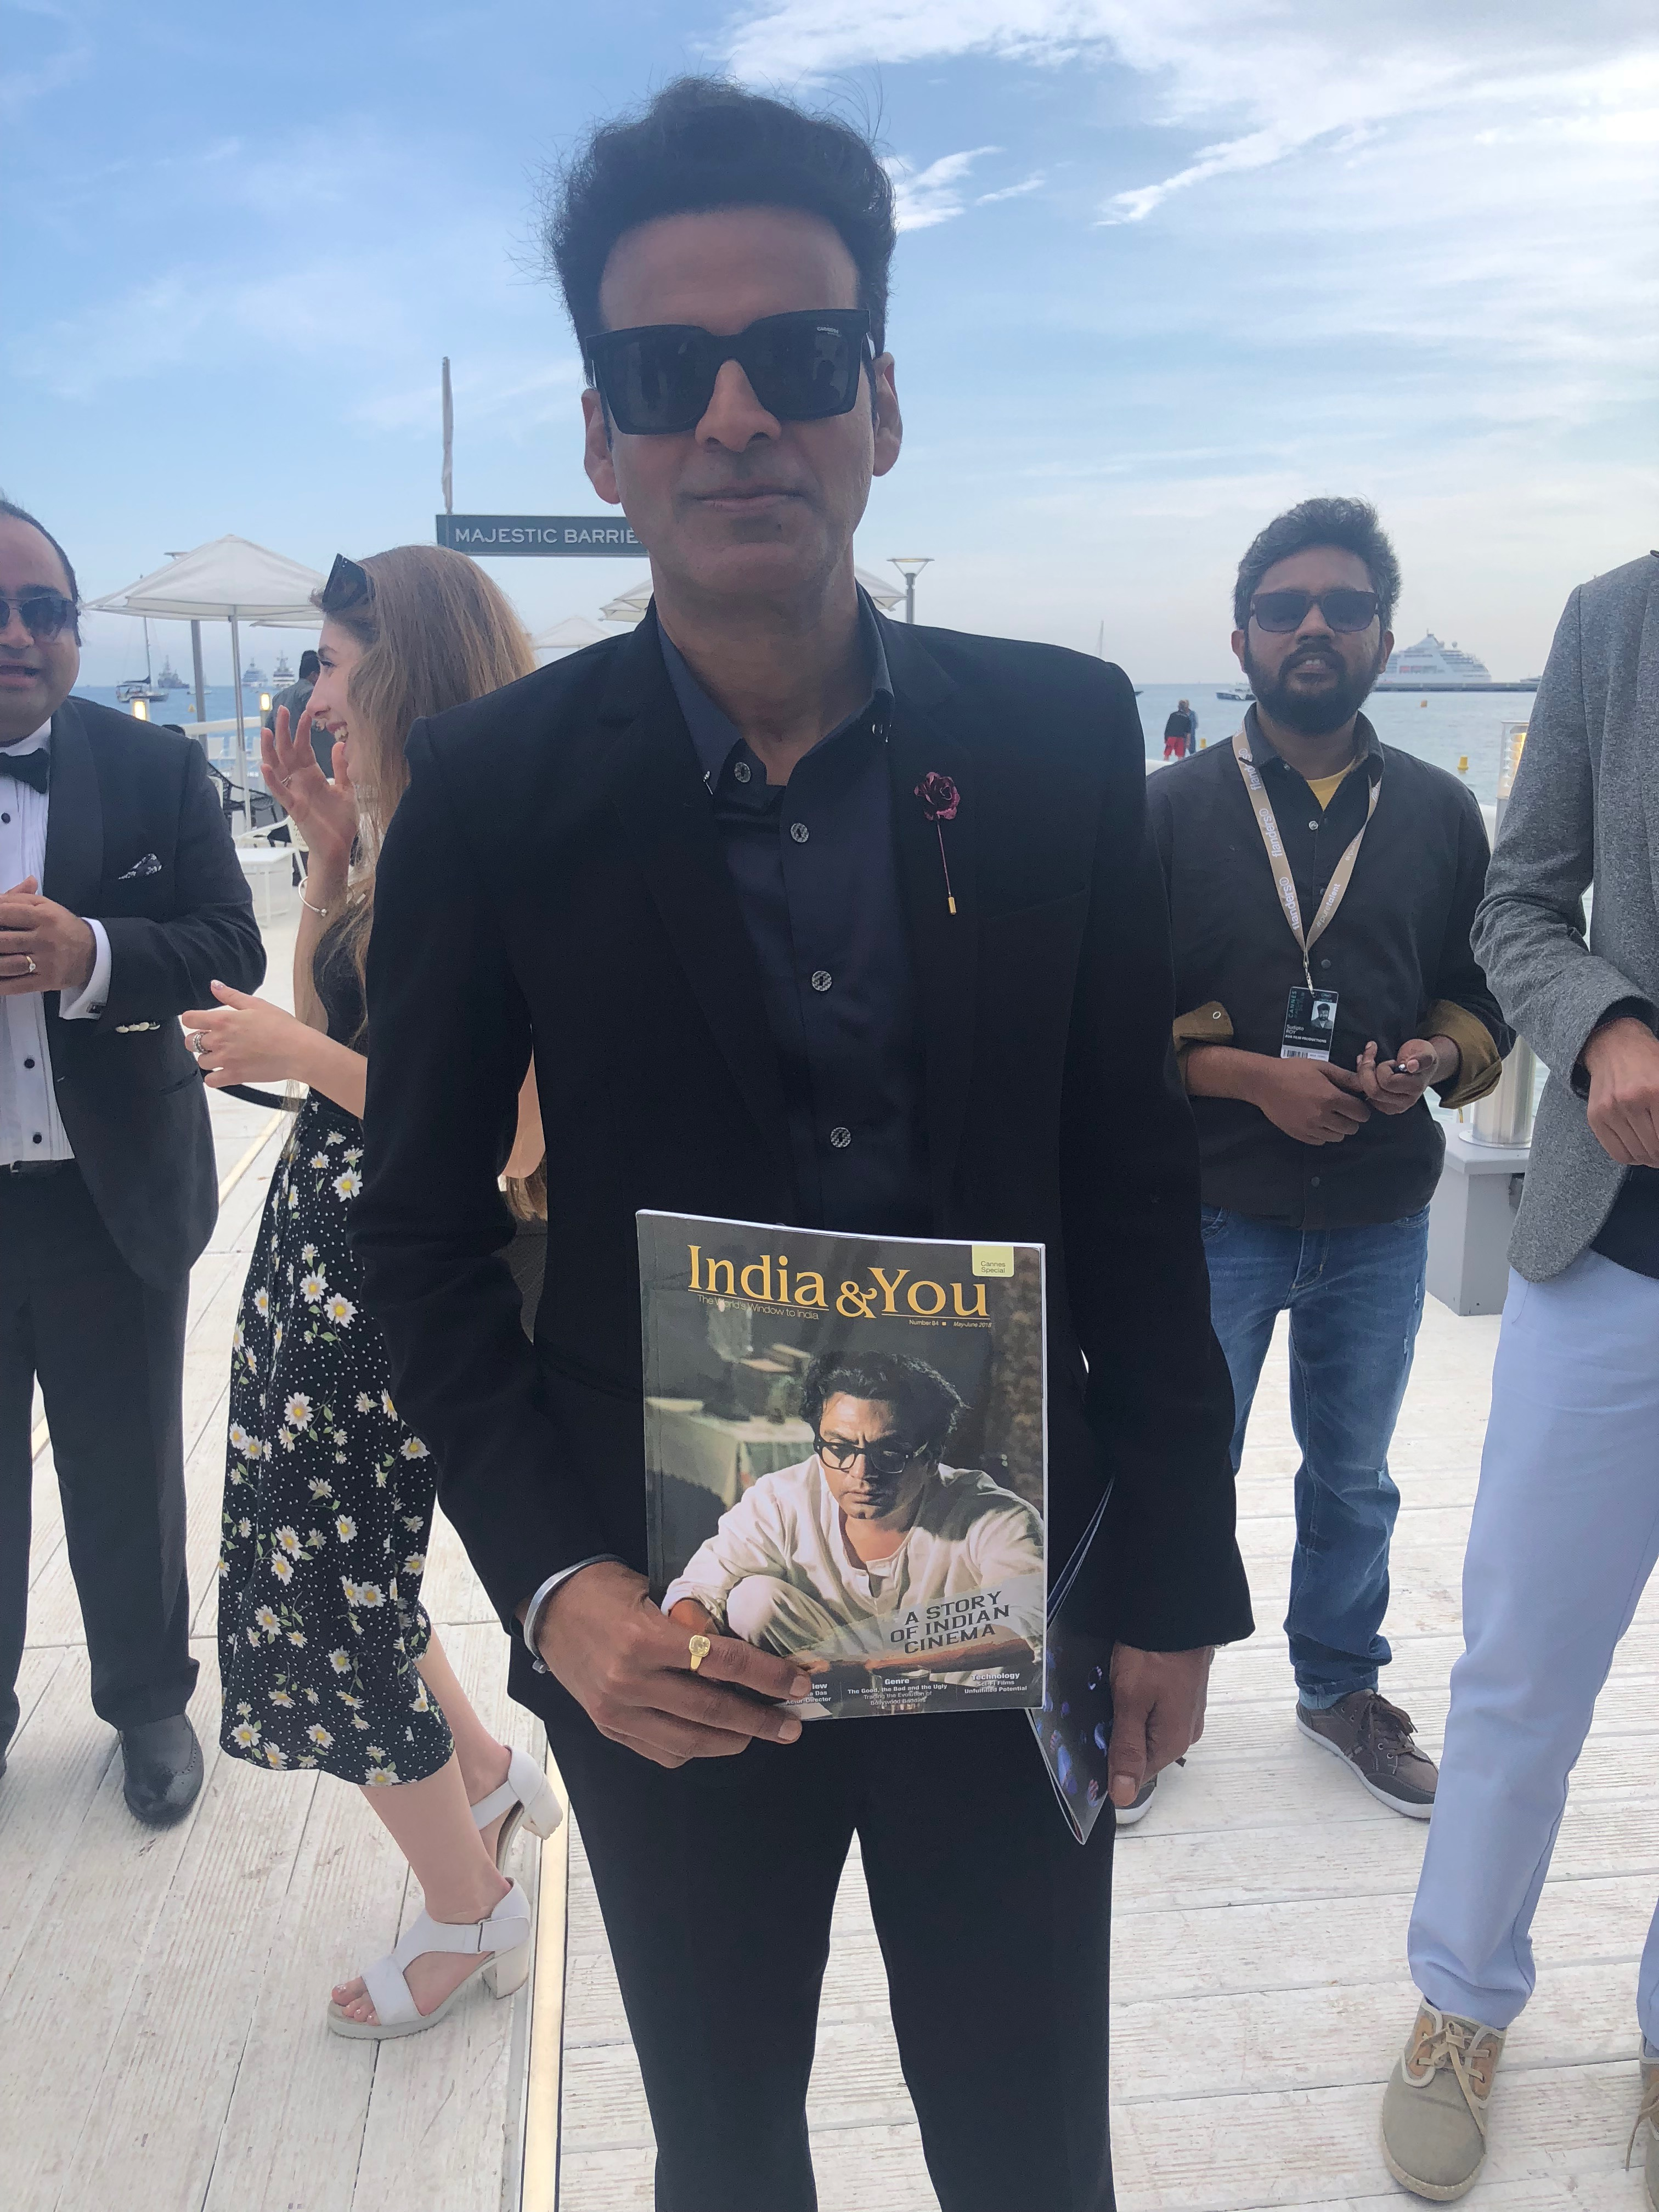 Manoj Bajpayee with the Cannes Film Festival special issue of the India & You magazine by Media India Group